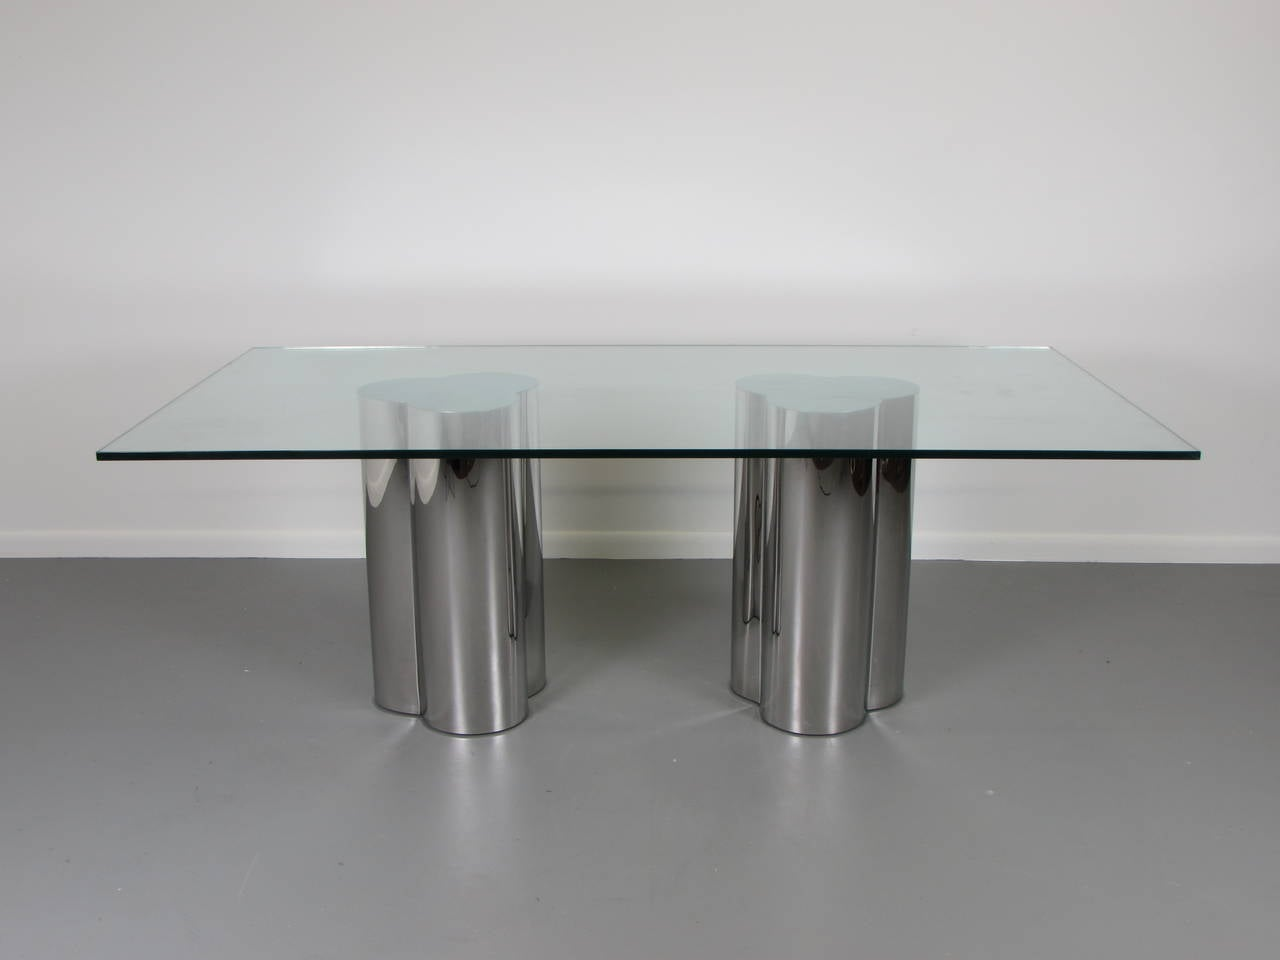 Custom Mirrored Chrome Cloud Table Bases Or Pedestals By Refine Modern  Studio 2